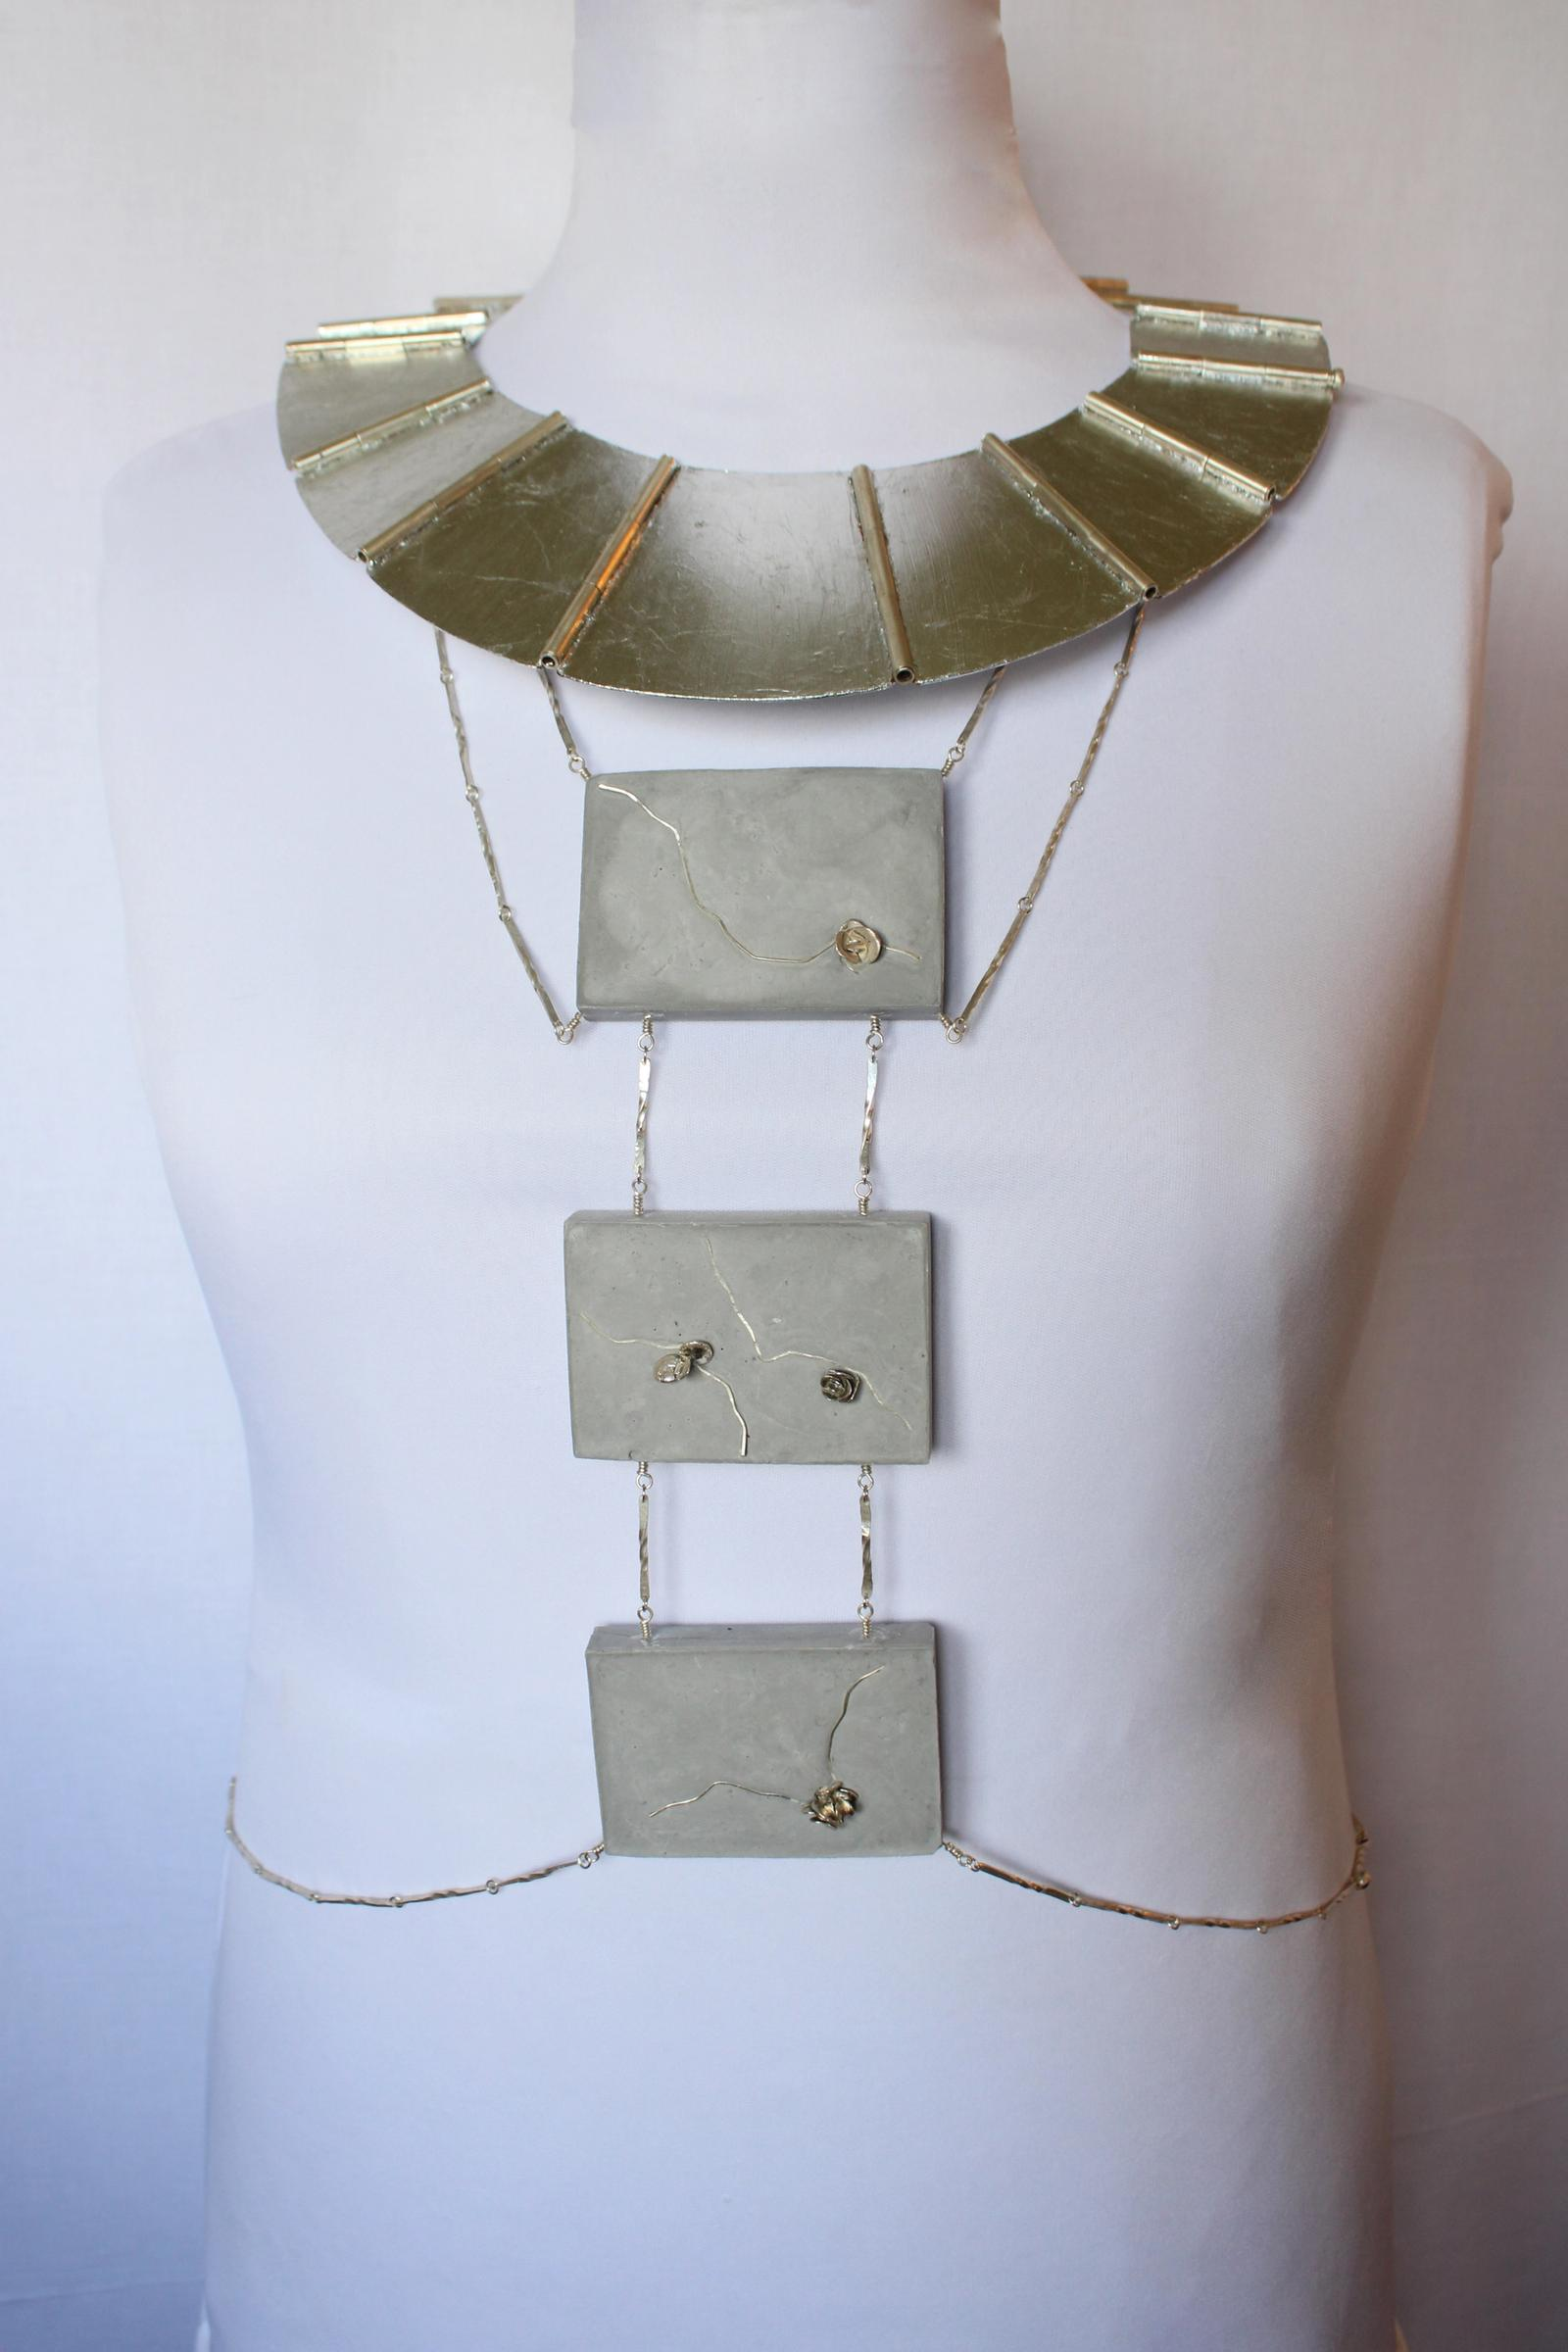 Front view; Body chain & necklace